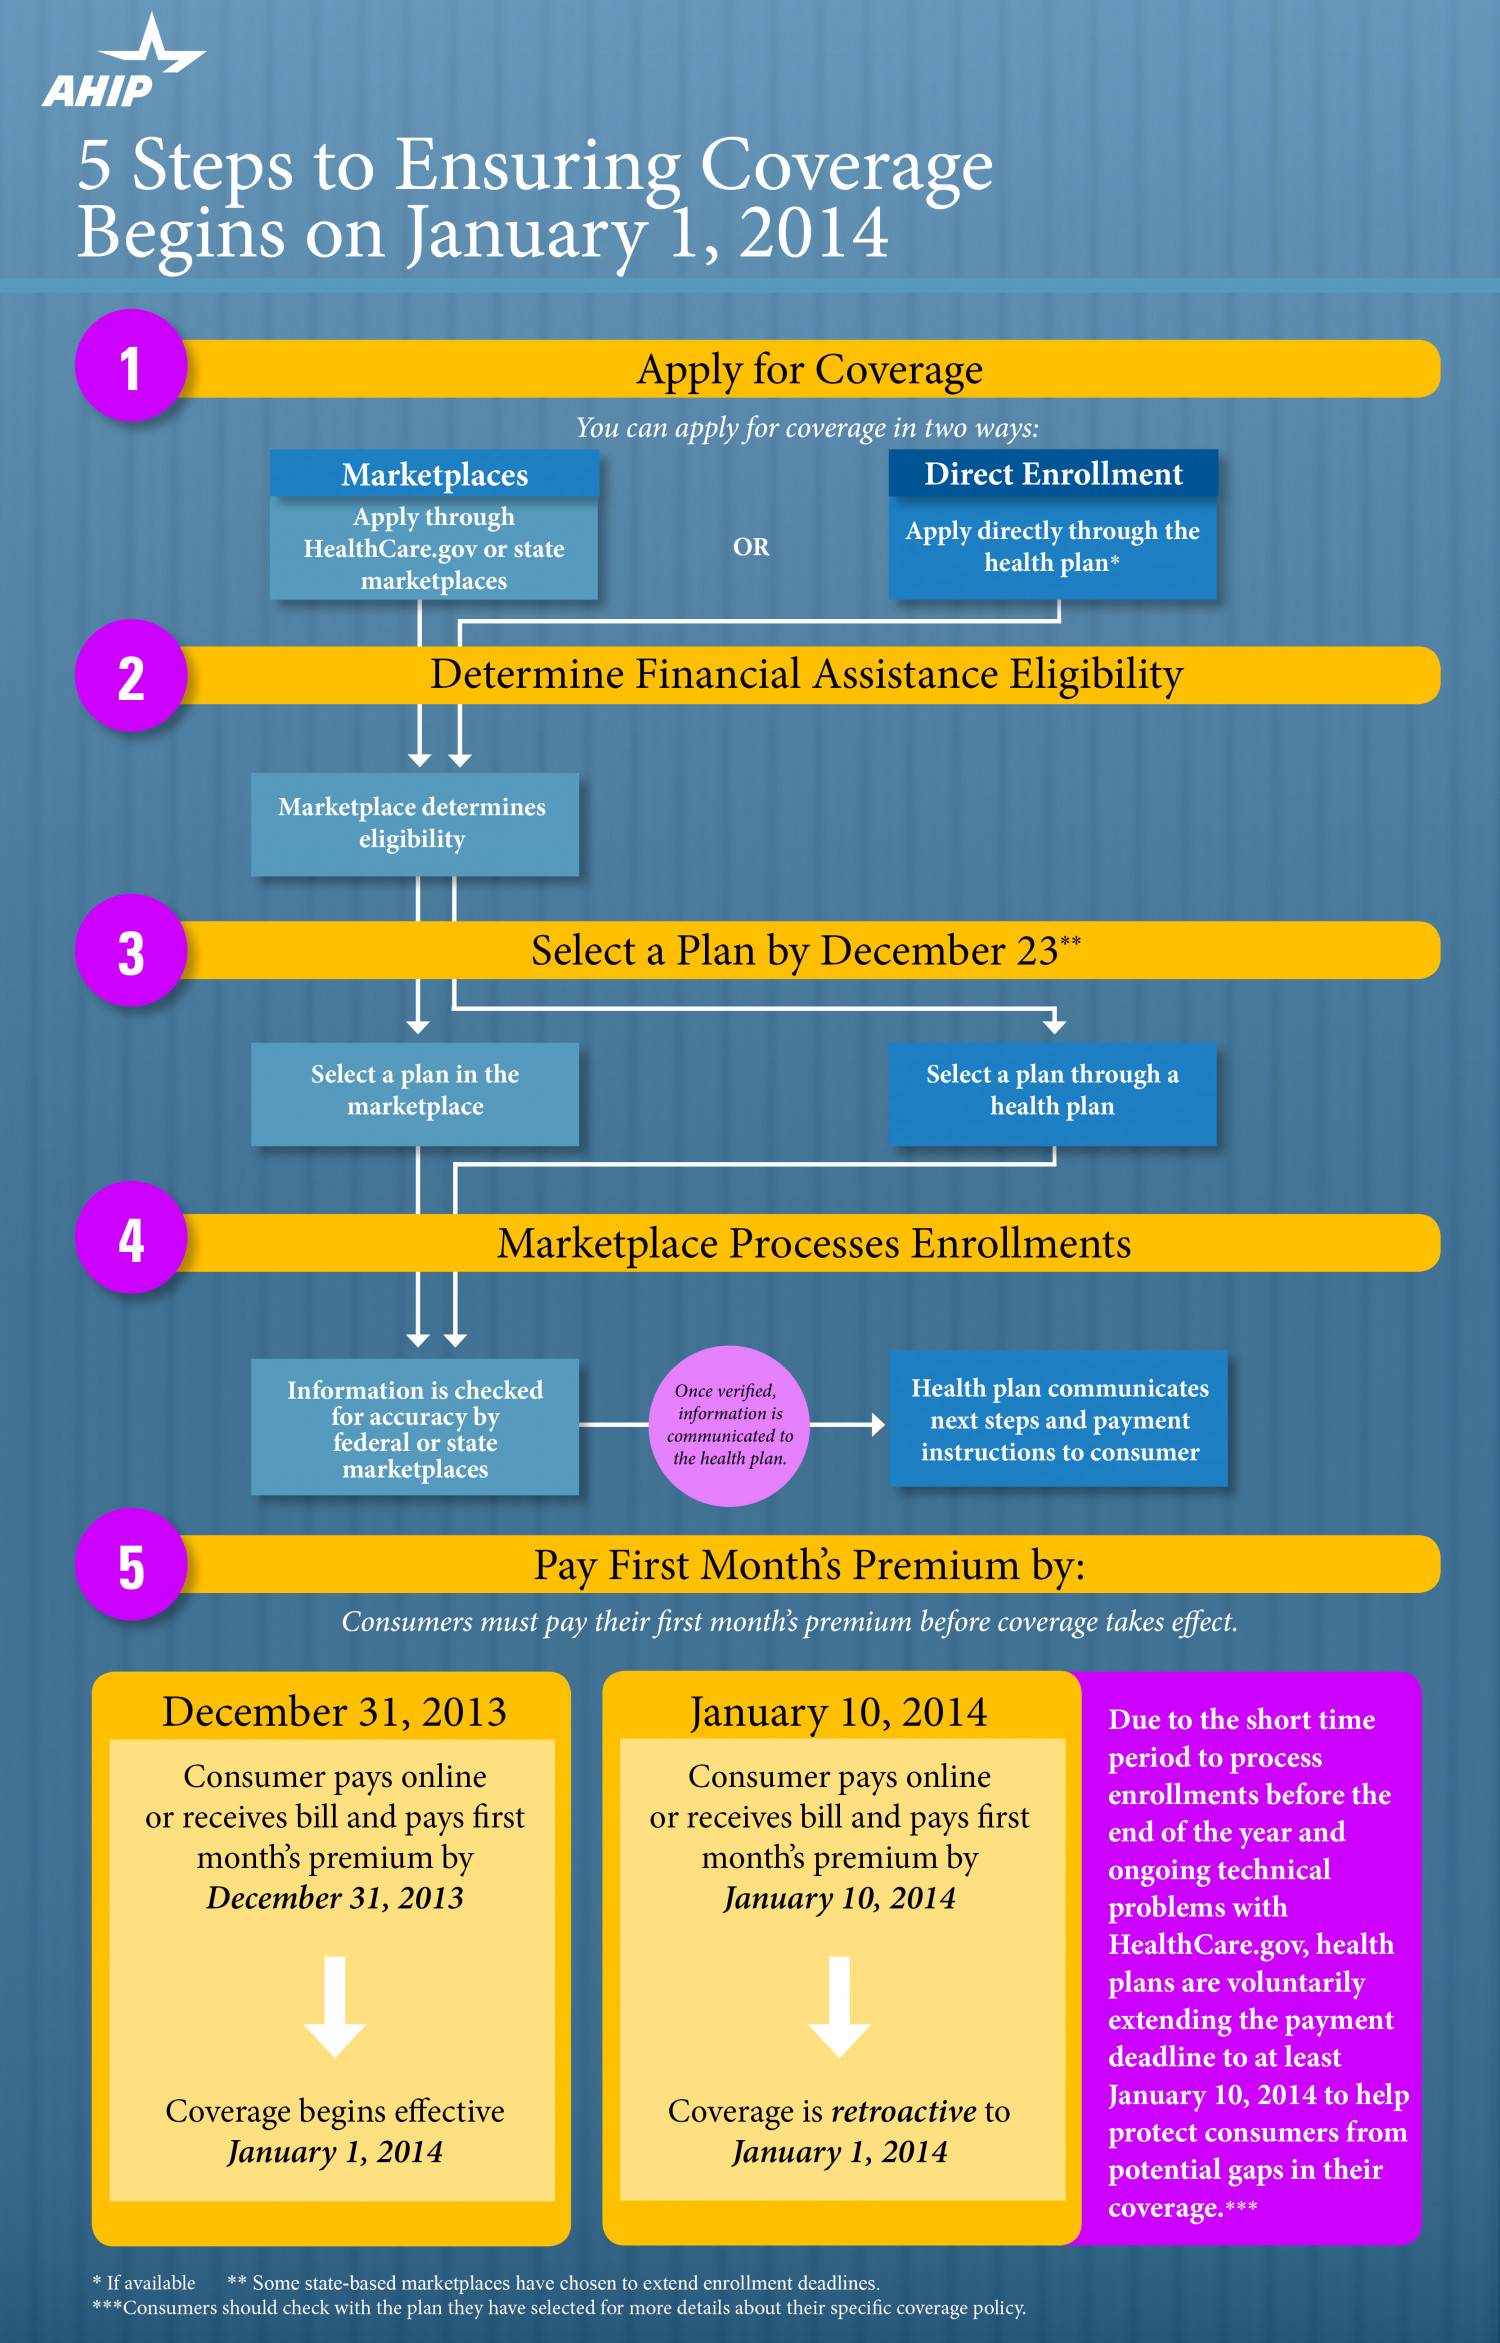 5 Steps to Ensuring Coverage Begins on January 1, 2014 Infographic